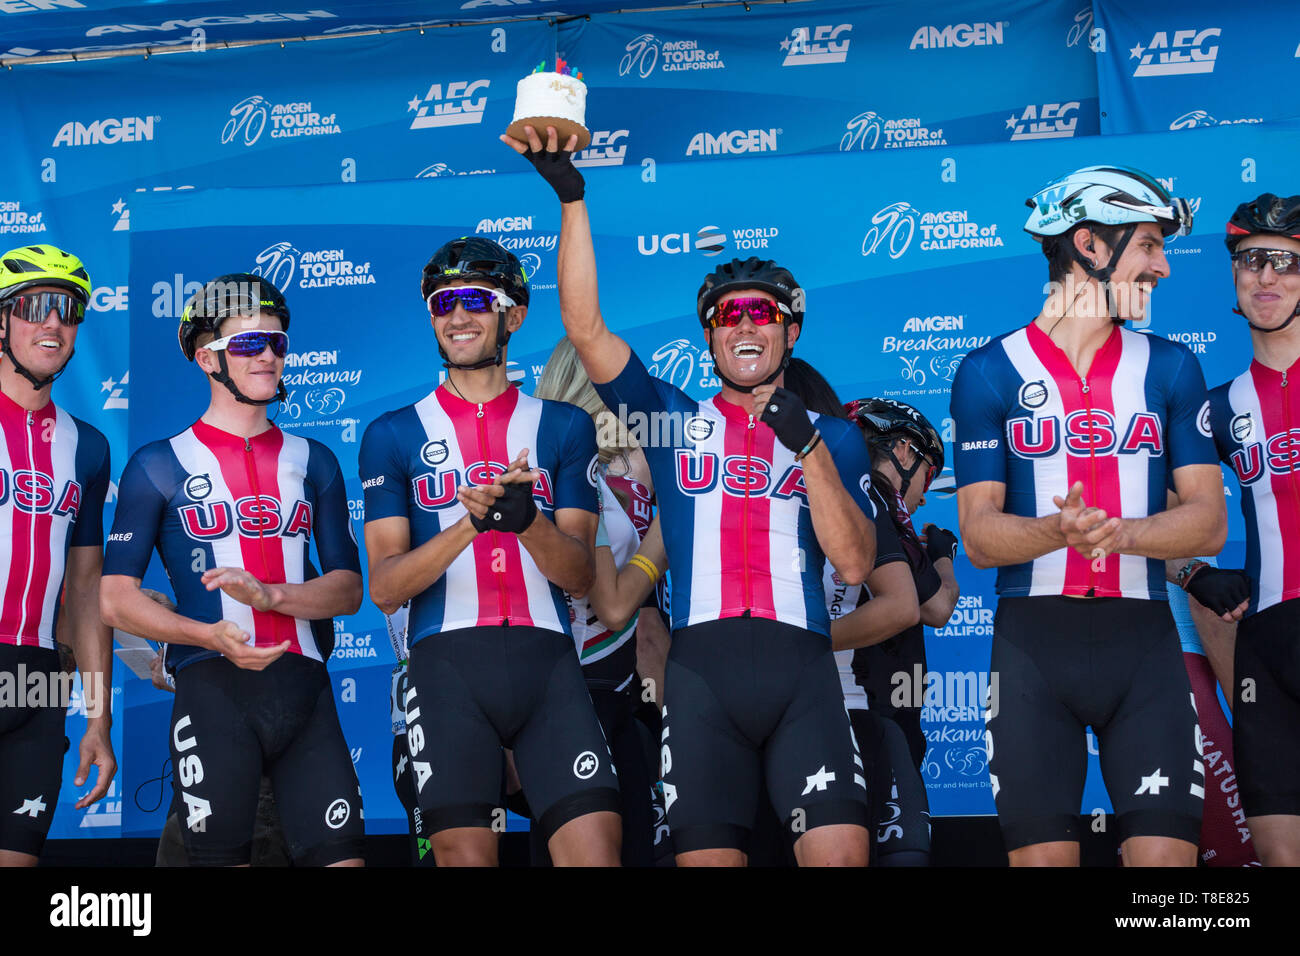 Sacramento, California, USA. 12th May, 2019. TRAVIS MCCABE lifts his birthday cake as Team USA is introduced prior to Stage 1 of the 2019 Amgen Tour of California at California's State Capitol city of Sacramento on Sunday afternoon. Stage 1 begins and ends in Sacramento, where the American and Sacramento Rivers meet before heading west. This is the race's 10th year in Sacramento.The 2019 Amgen Tour of California race will showcase scenic California roadways, coastlines and iconic settings, with more than 750 miles of racing throughout the seven-day event. The race will run north to south th - Stock Image